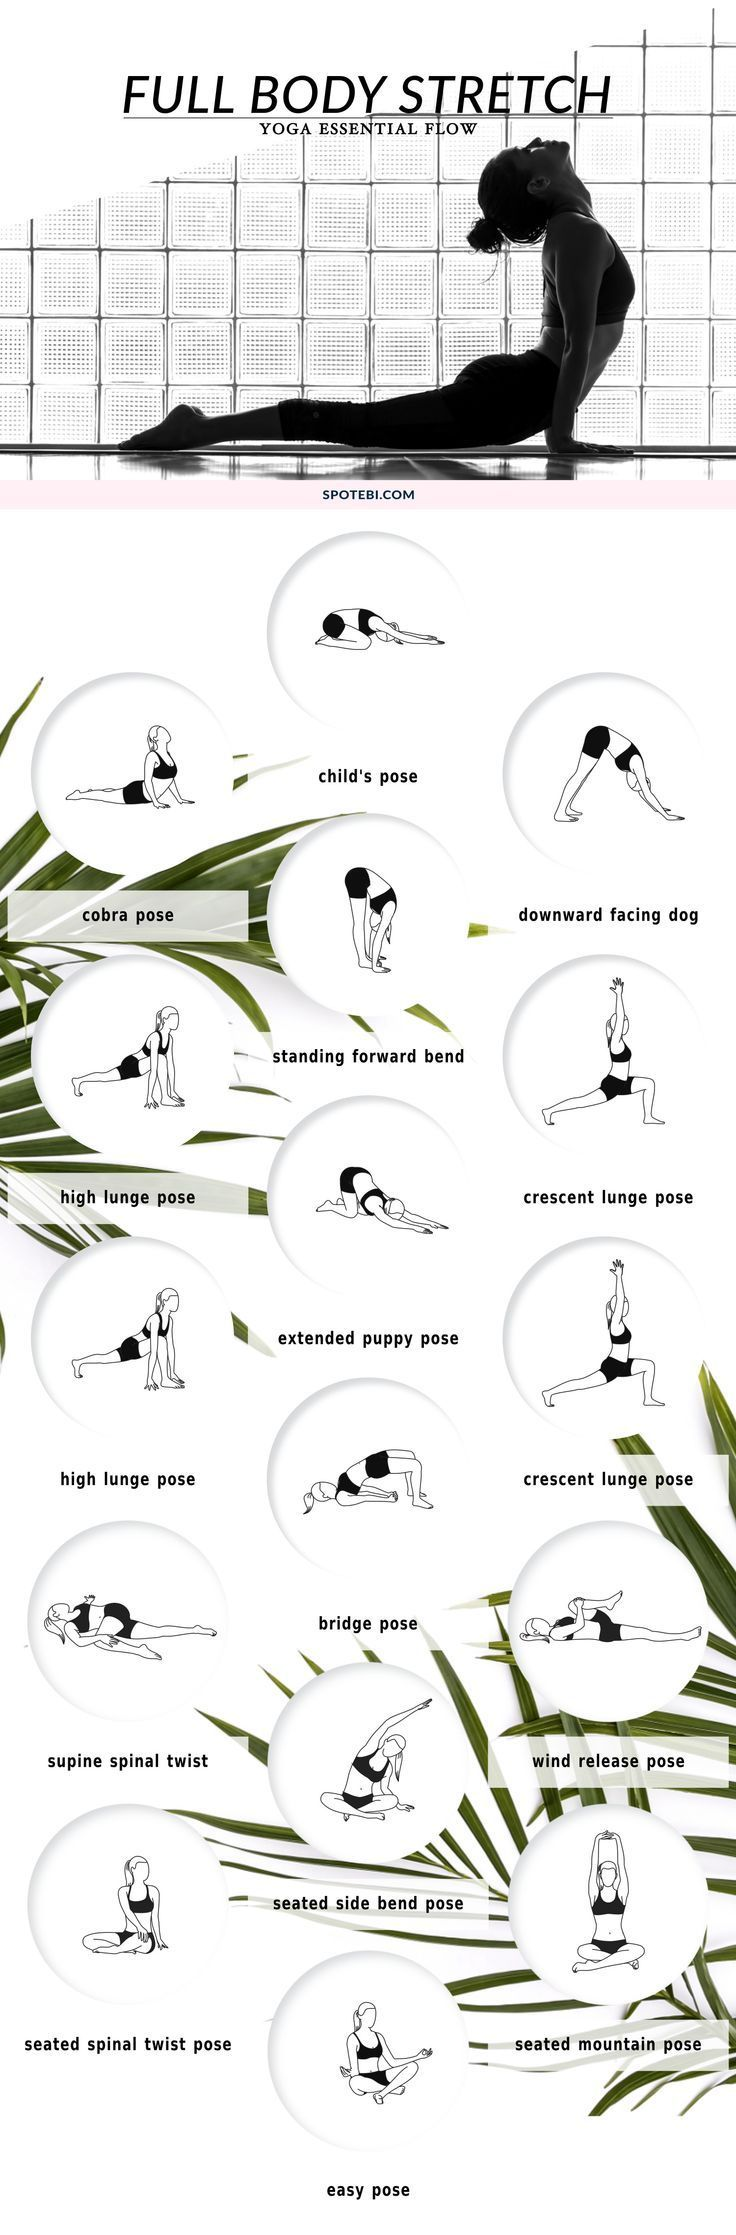 Improve your range of motion, increase circulation, and calm your mind with this 10 minute full body stretching flow. The following yoga poses target your tightest muscles, ensuring an amazing total body stretch!